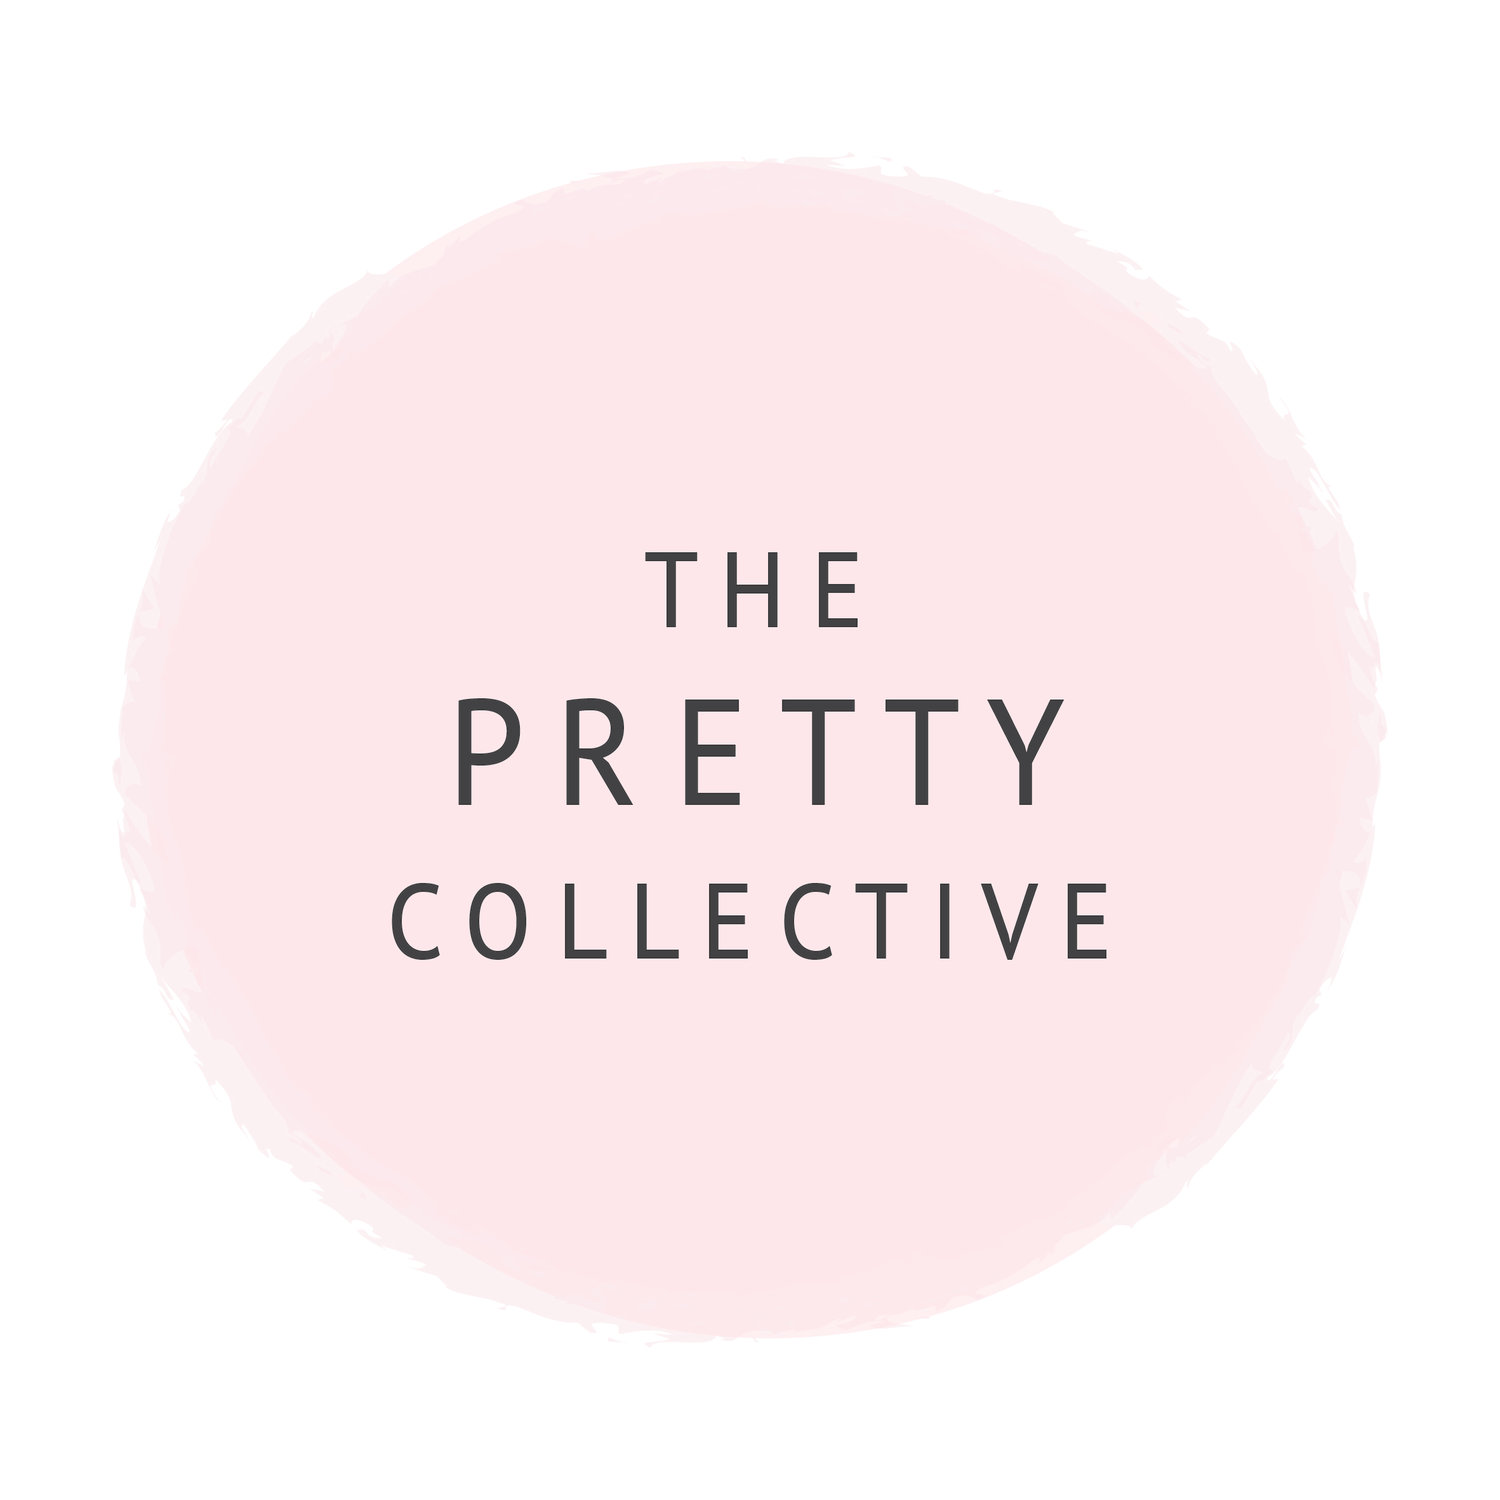 The Pretty Collective